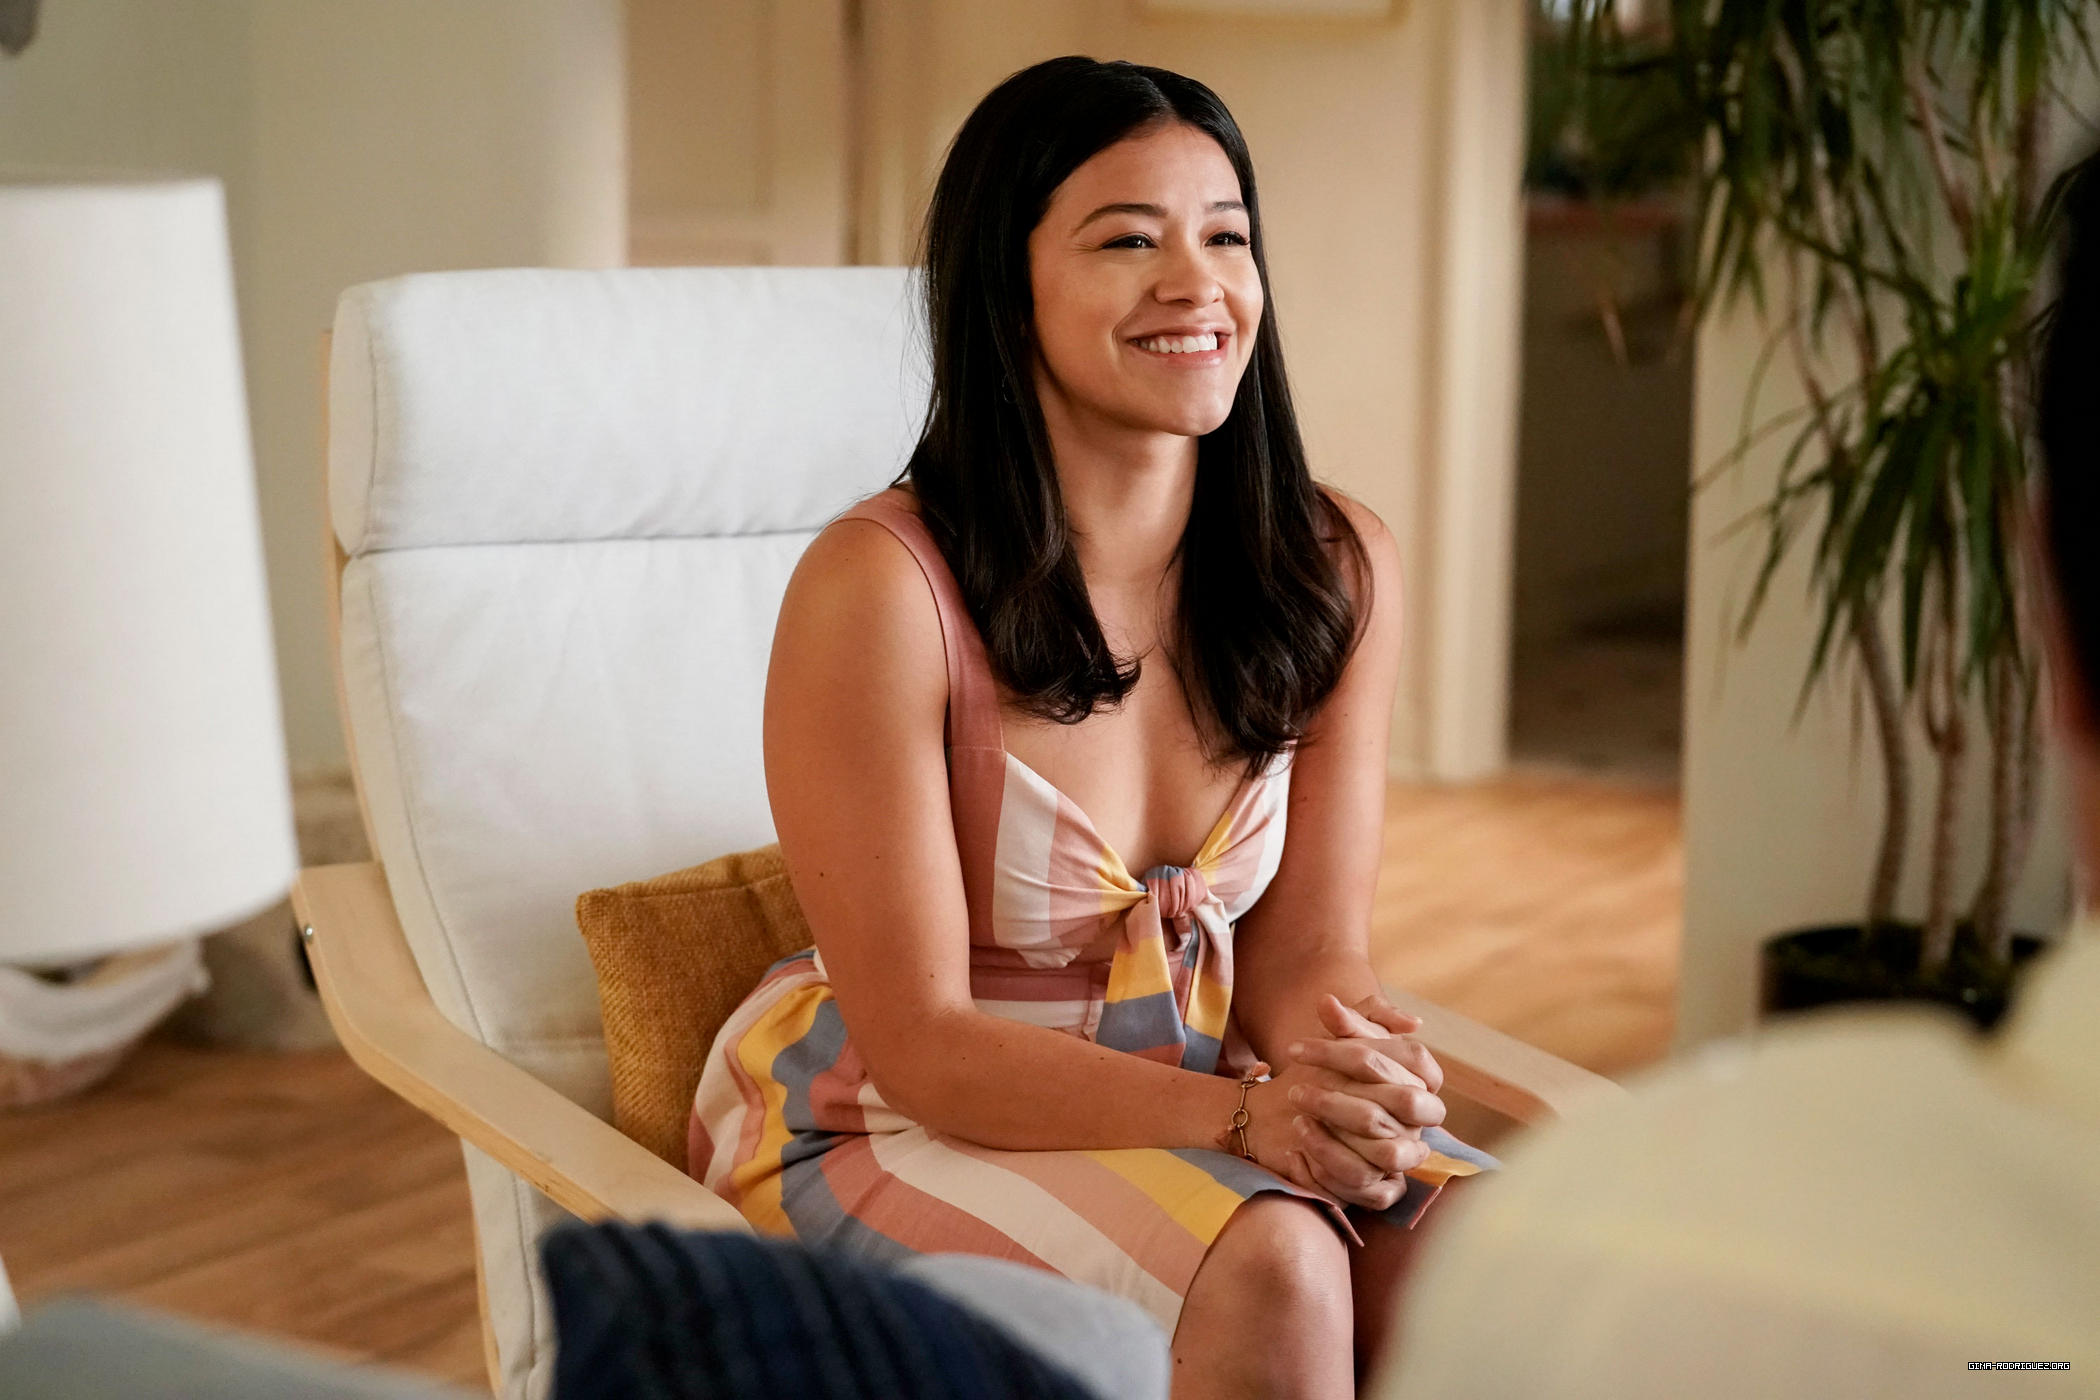 Photos: 'Jane the Virgin' Episodes 5×11-5×19 Screencaps and Stills